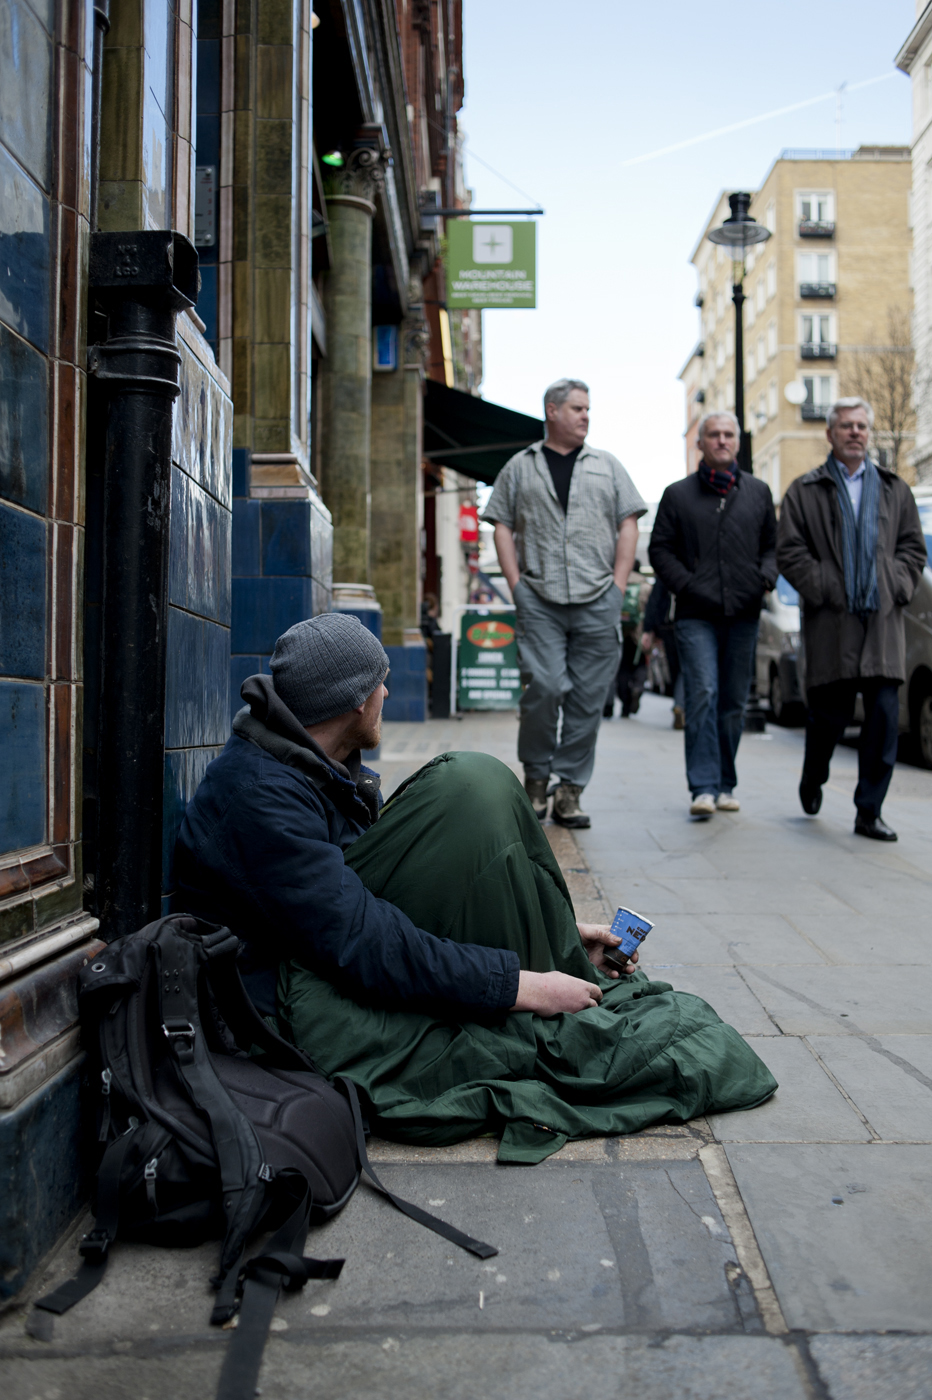 0003_2_homeless_london.jpg